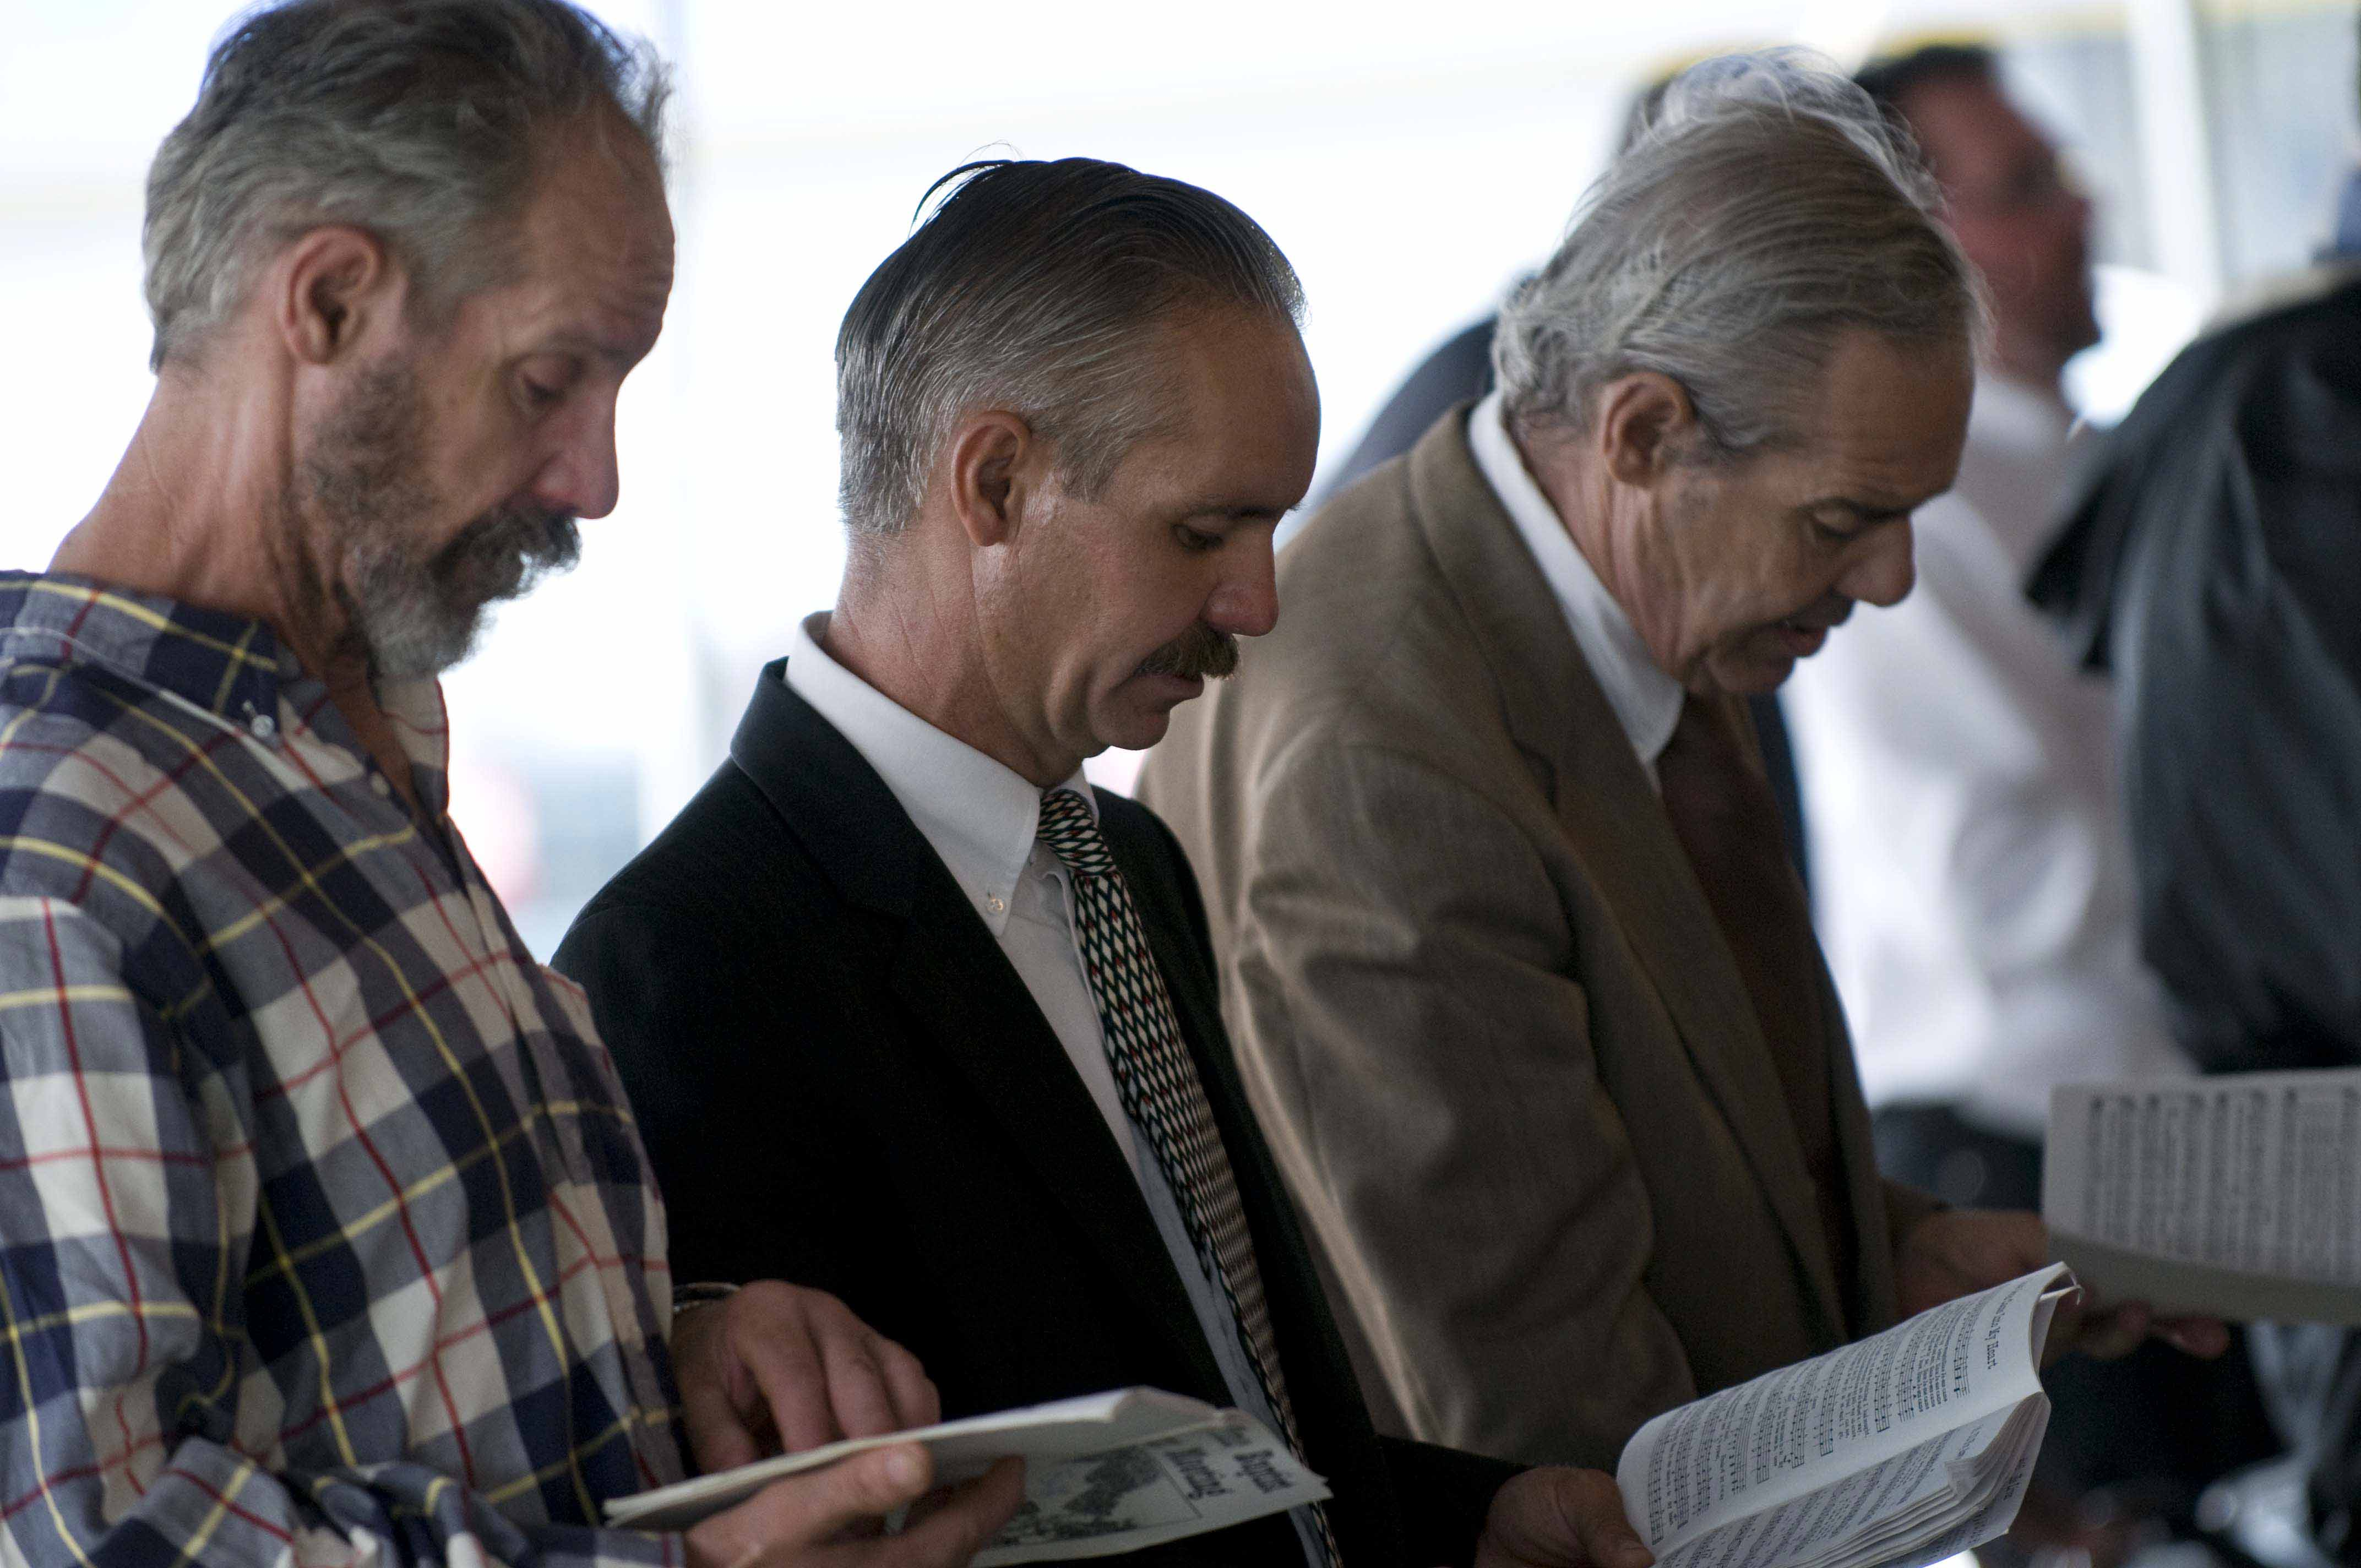 Camp_meeting_2011_265